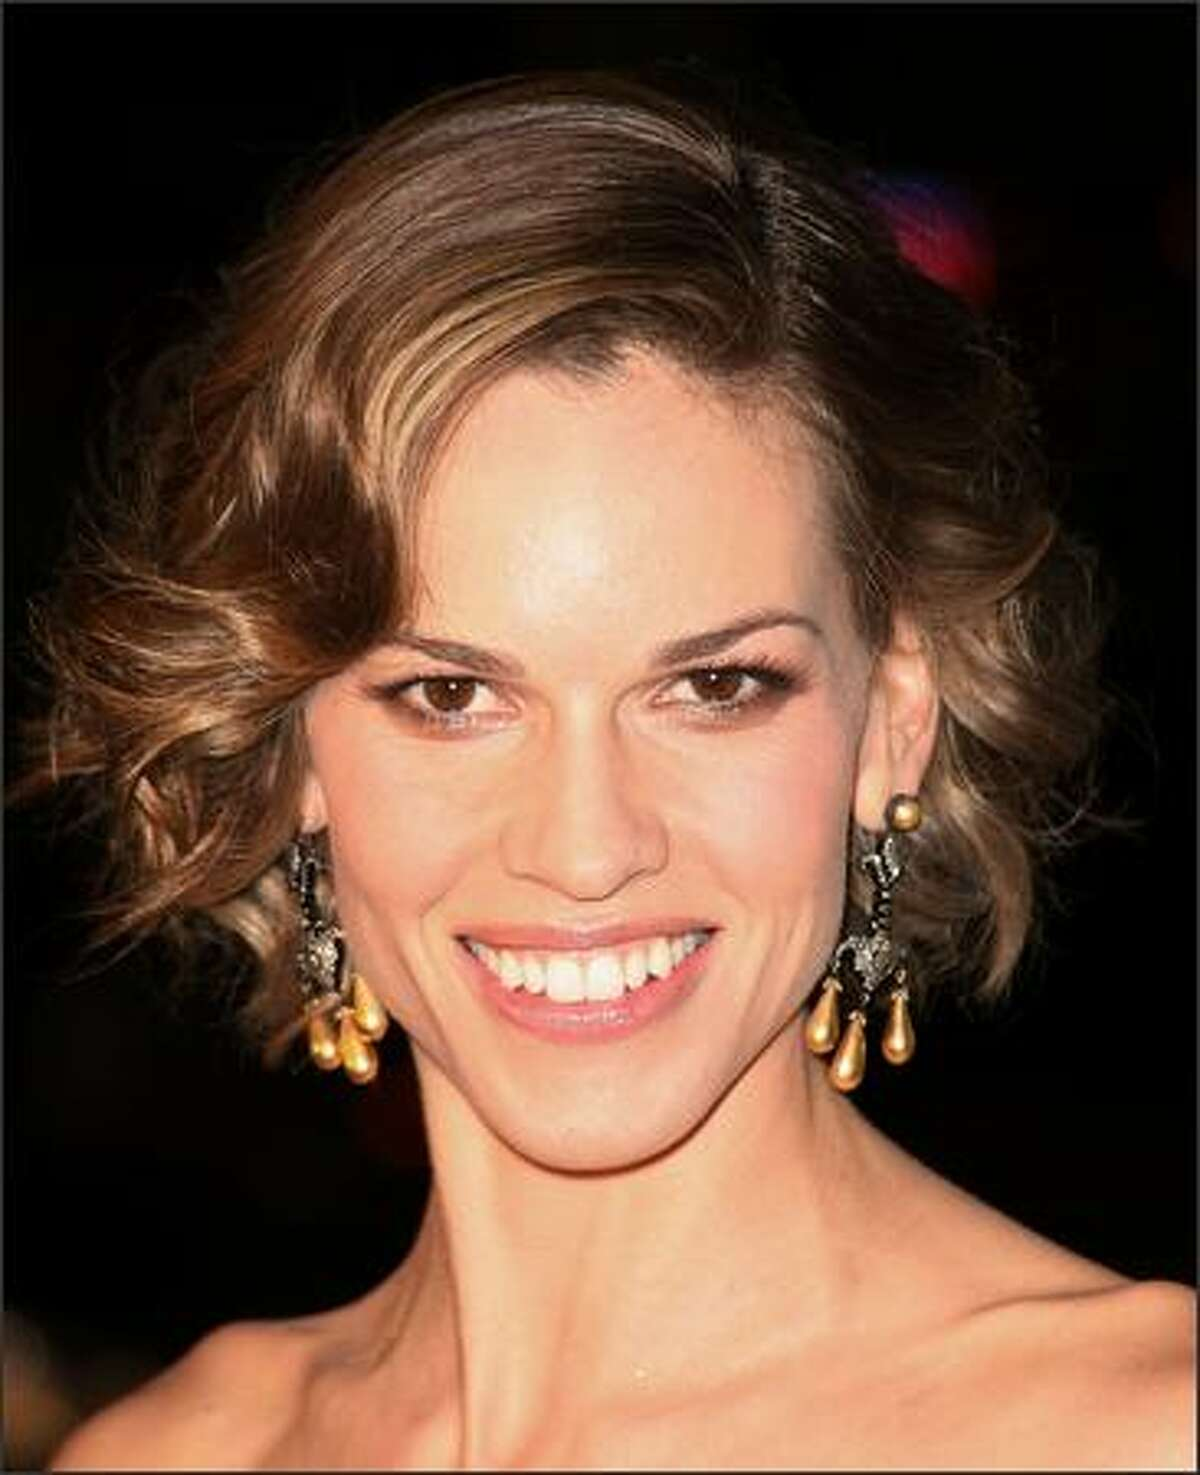 Actress Hilary Swank attends the Warner Bros.' film premiere of